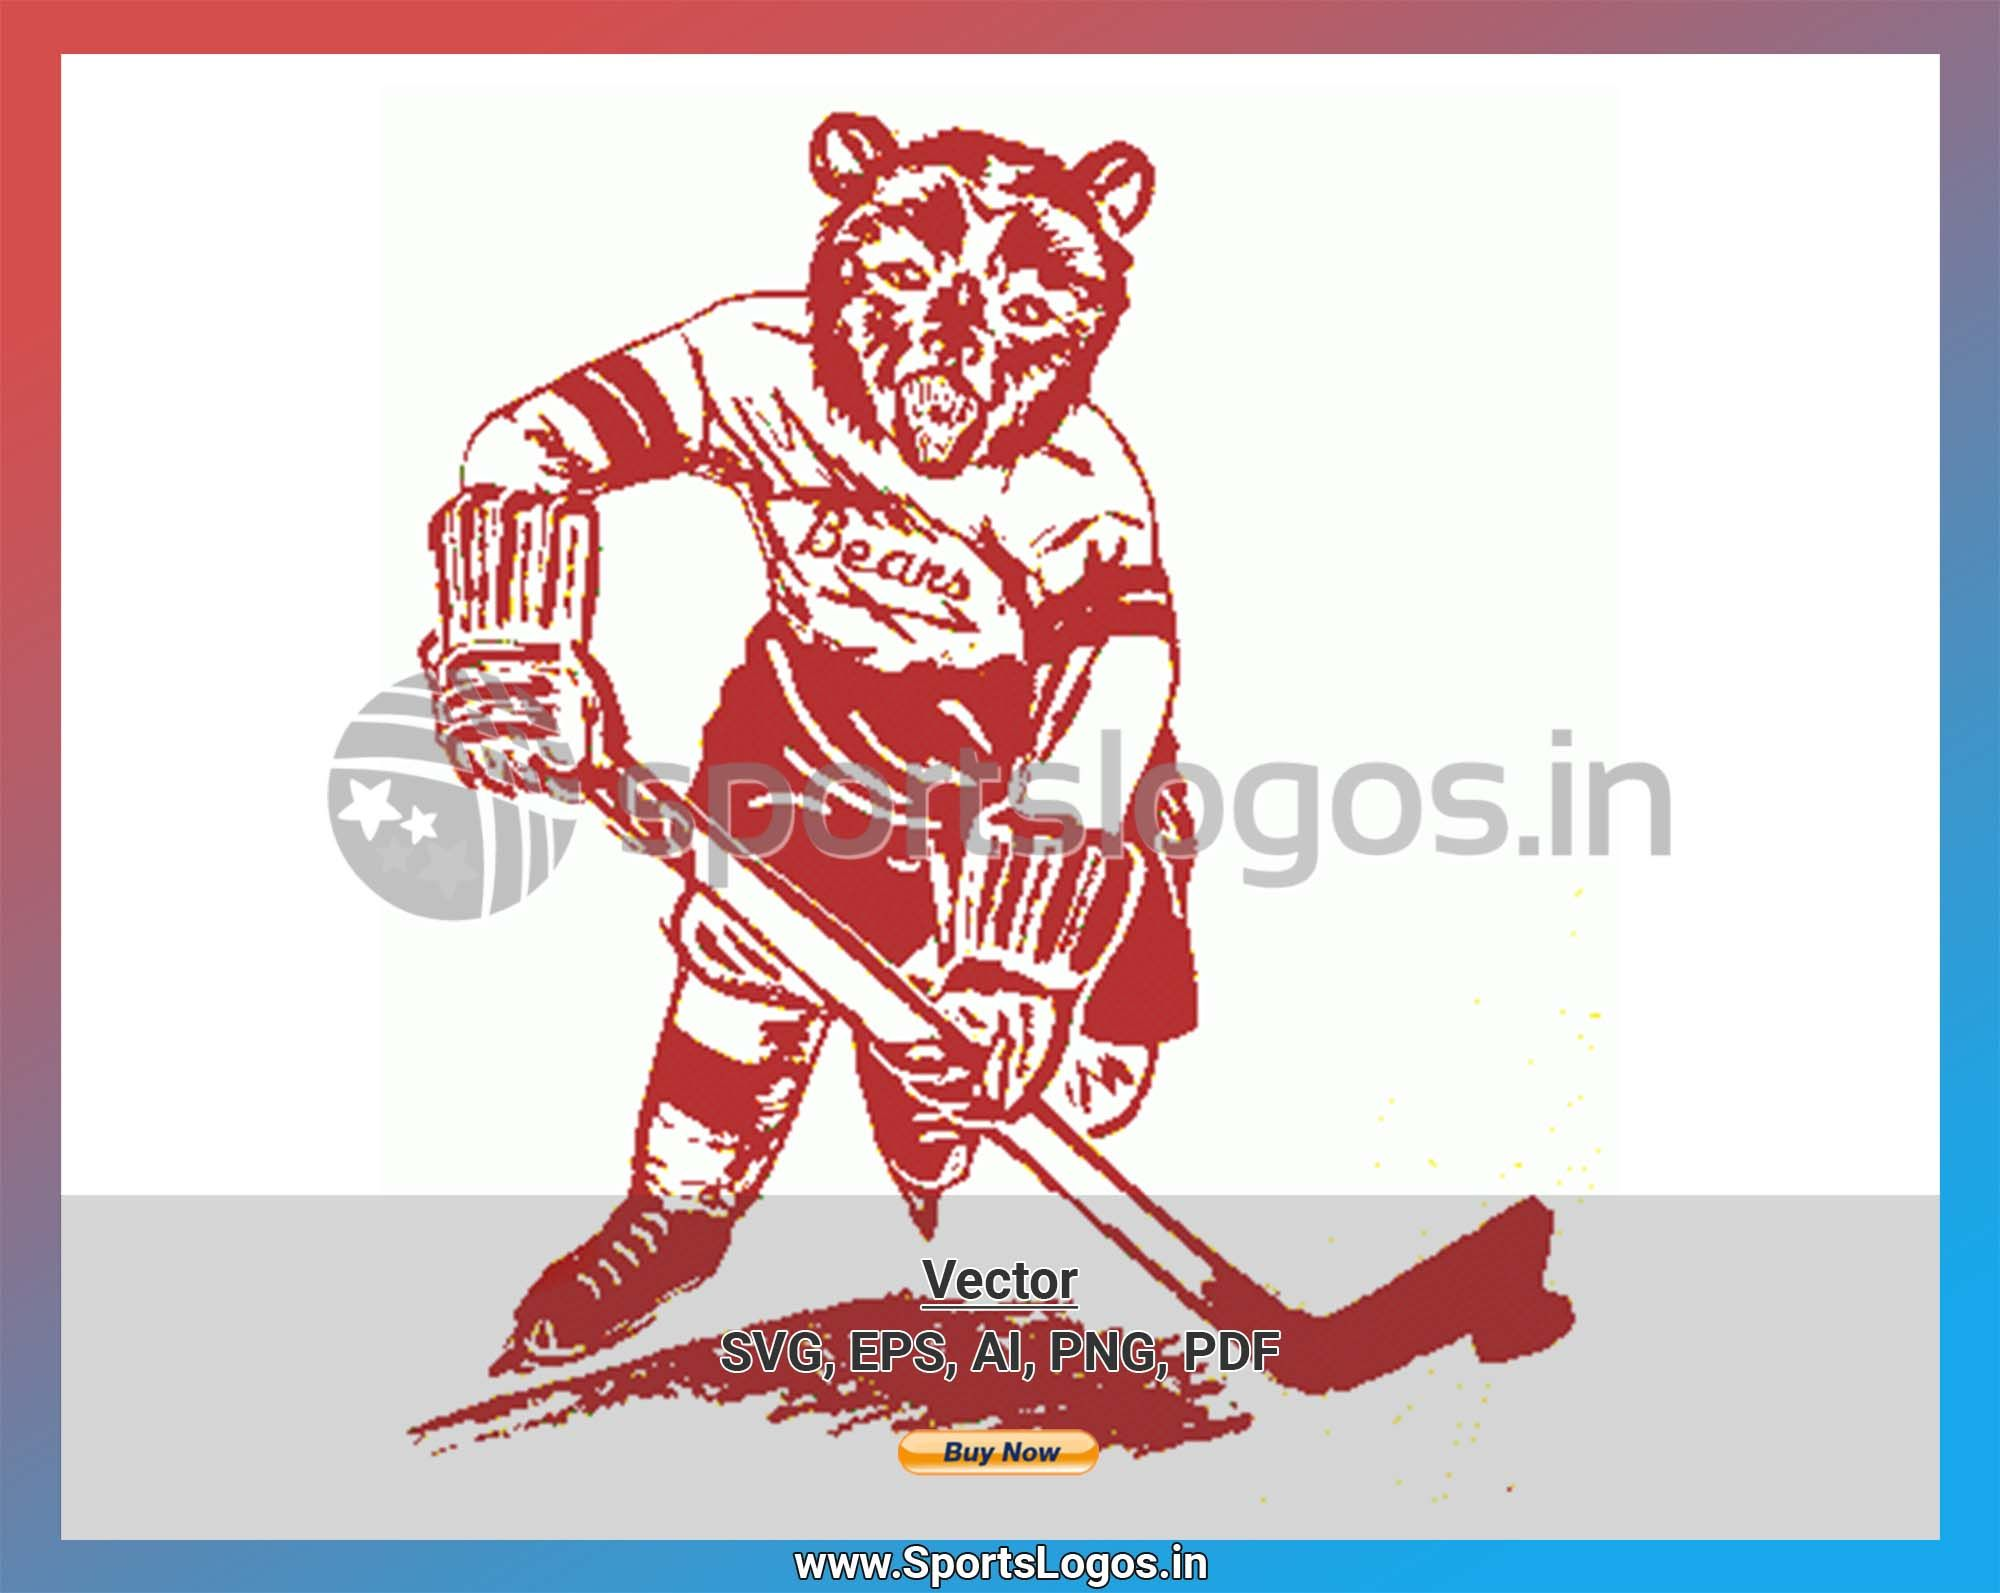 Hershey Bears Hockey Sports Vector Svg Logo In 5 Formats Spln001827 Sports Logos Embroidery Vector For Nfl Nba Nhl Mlb Milb And More Embroidery Logo Hershey Bears American Hockey League